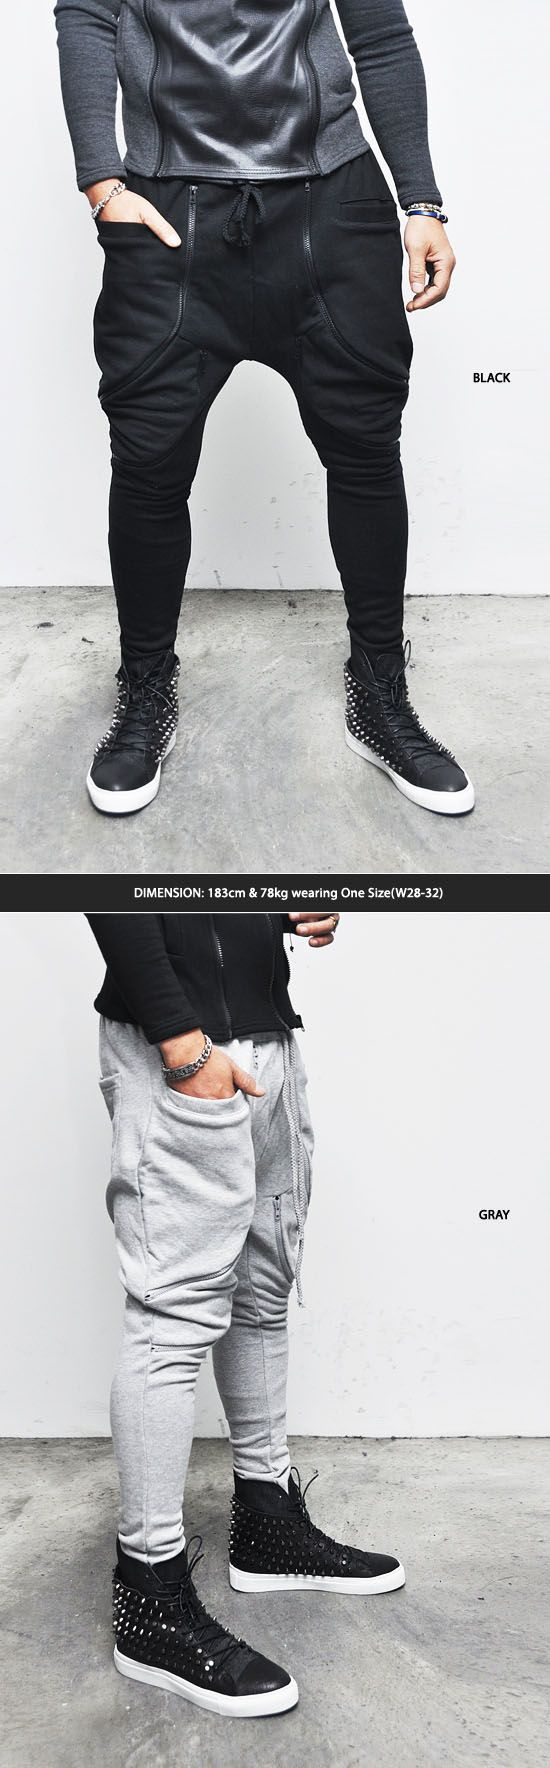 Bottoms :: Sweatpants :: Dual Zippered Rick Drop Crotch Baggy-Sweatpants 82 - Mens Fashion Clothing For An Attractive Guy Look